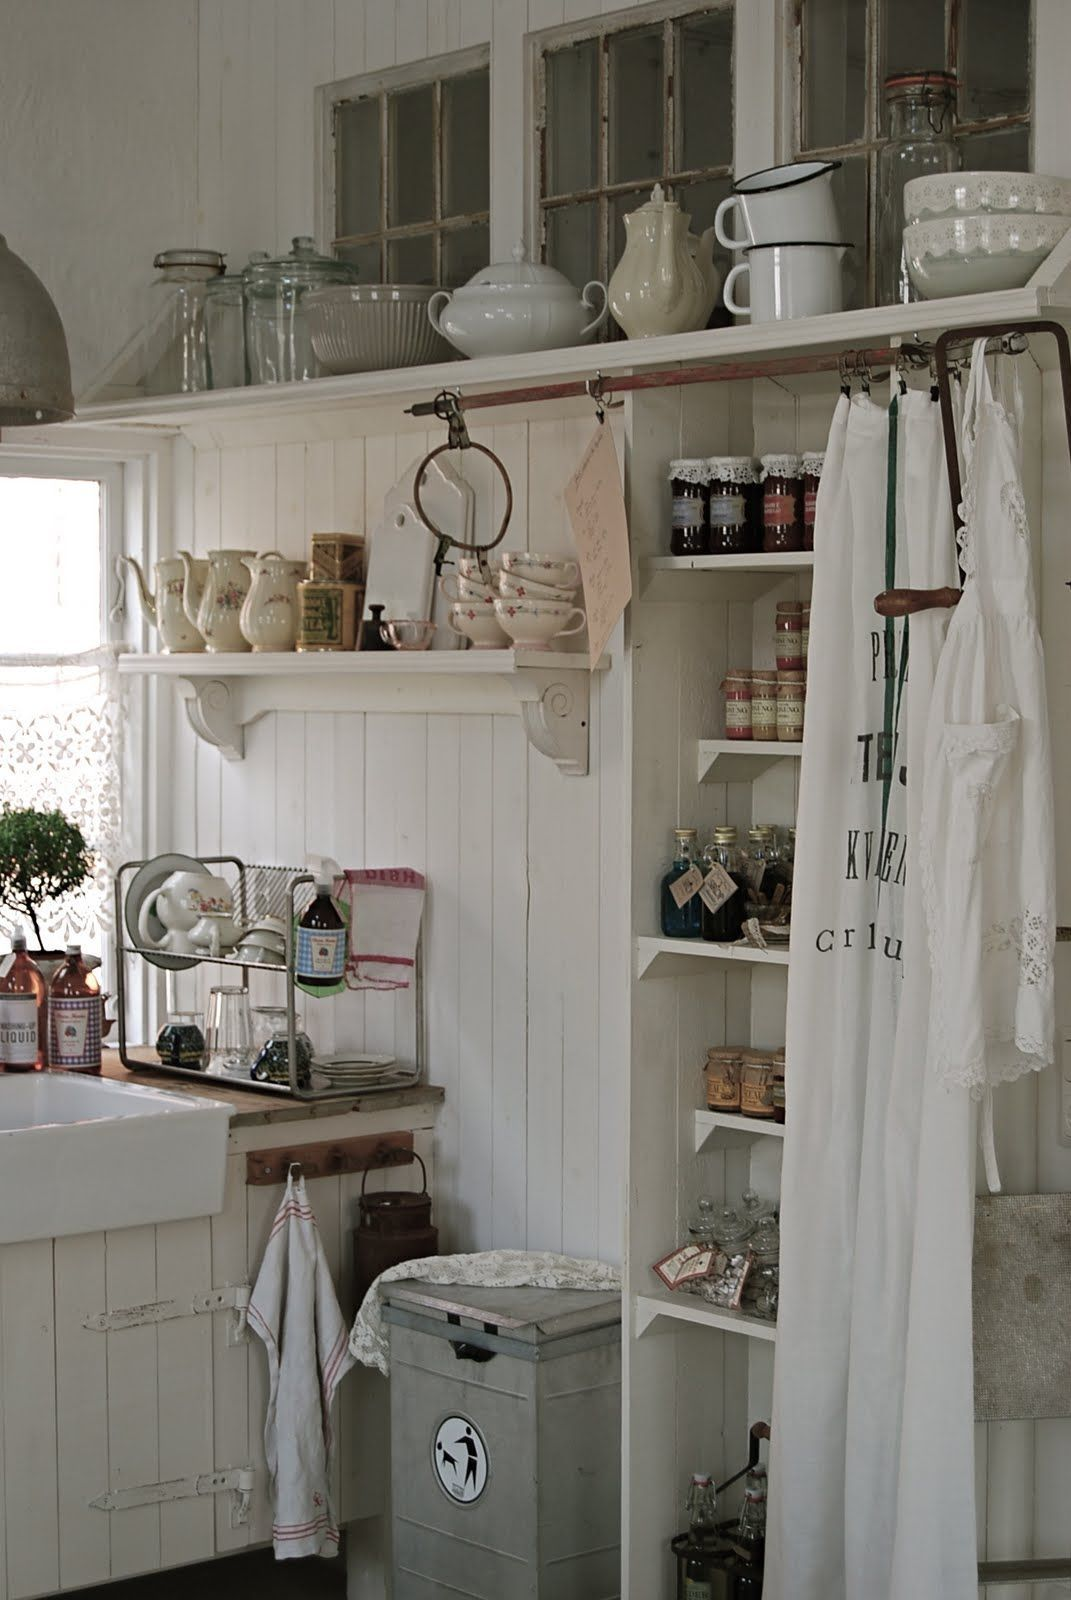 U-förmige küchendesigns ium starting to really like white kitchens love the curtain to